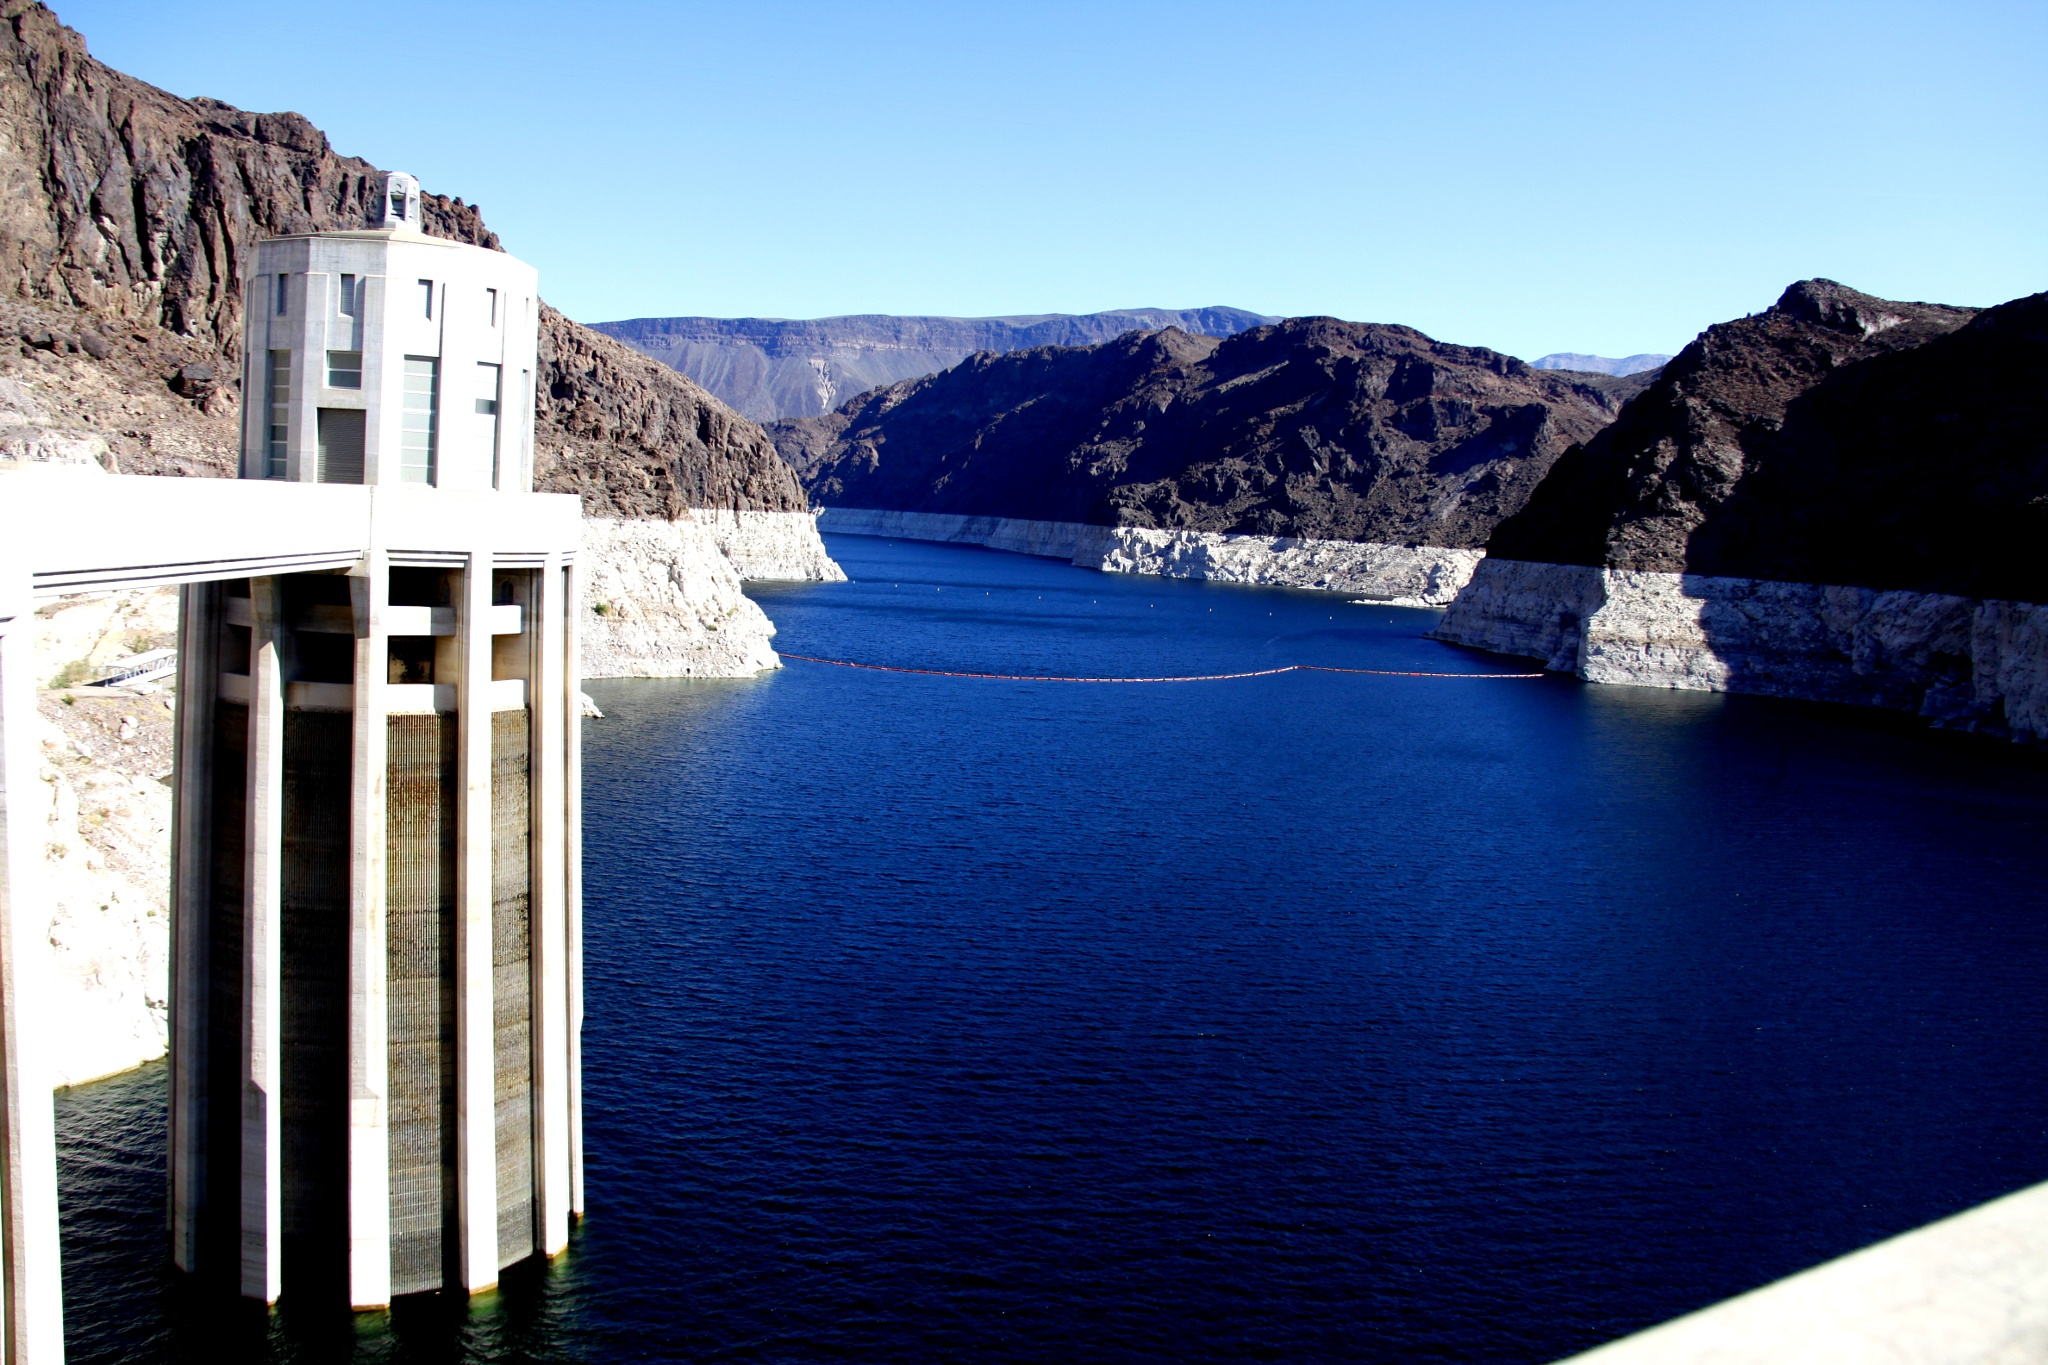 Hoover Dam by Marf